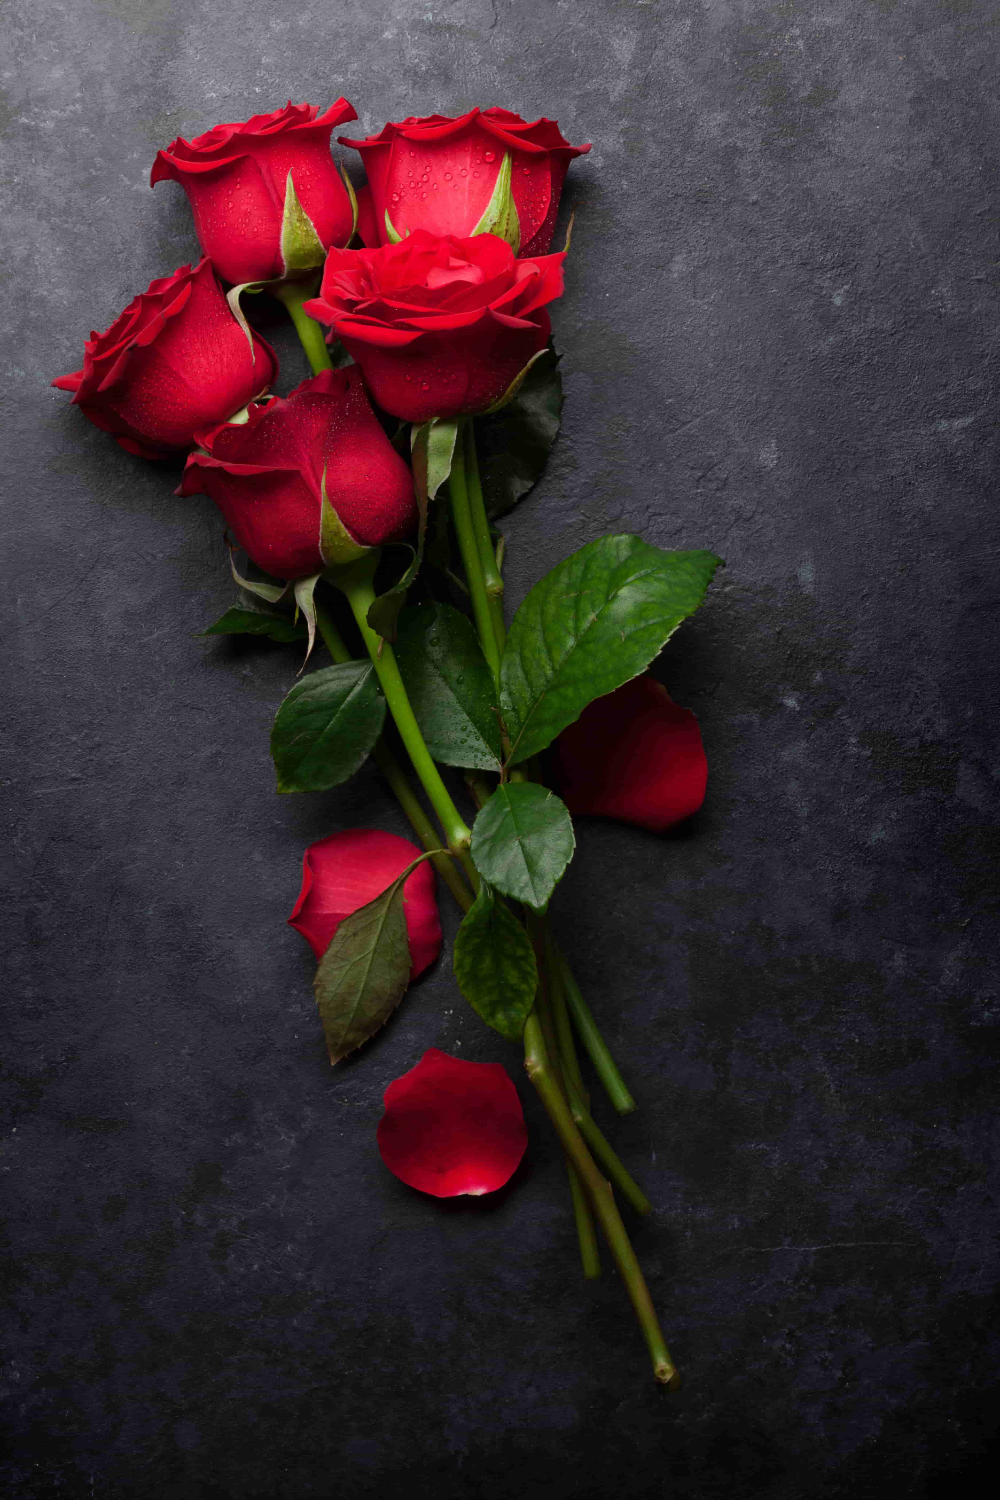 Nice Rose Flower Images For Free Downlaod Redroses Rose Rosephotography In 2020 Rose Flower Wallpaper Red Roses Wallpaper Beautiful Rose Flowers